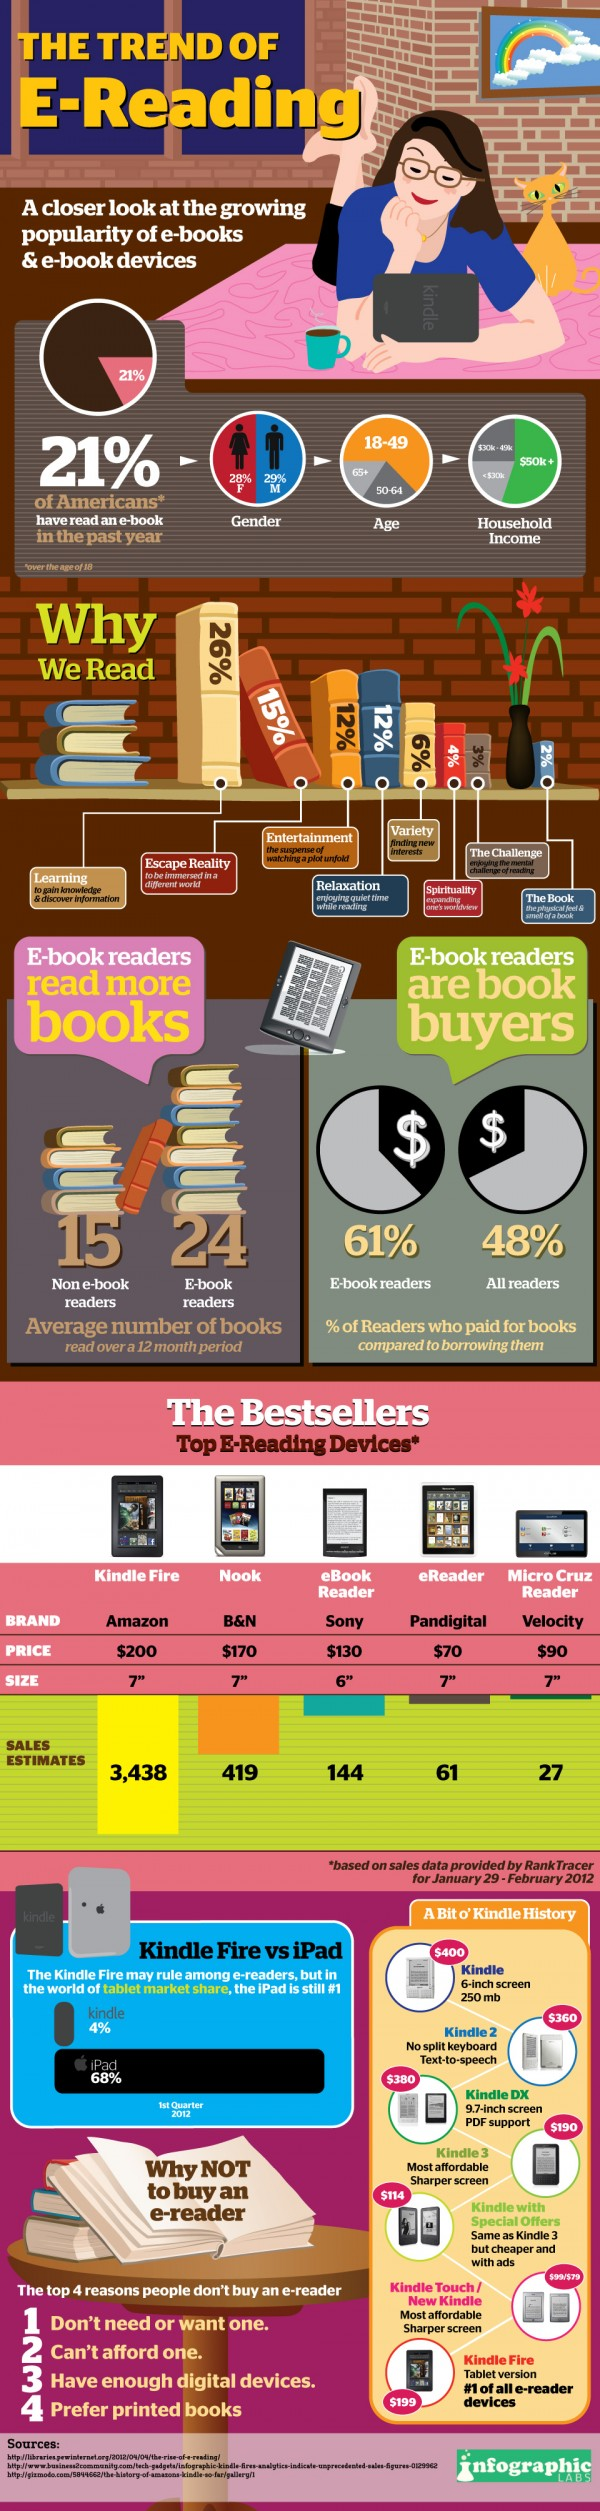 The-Trend-Of-E-Reading-infographic